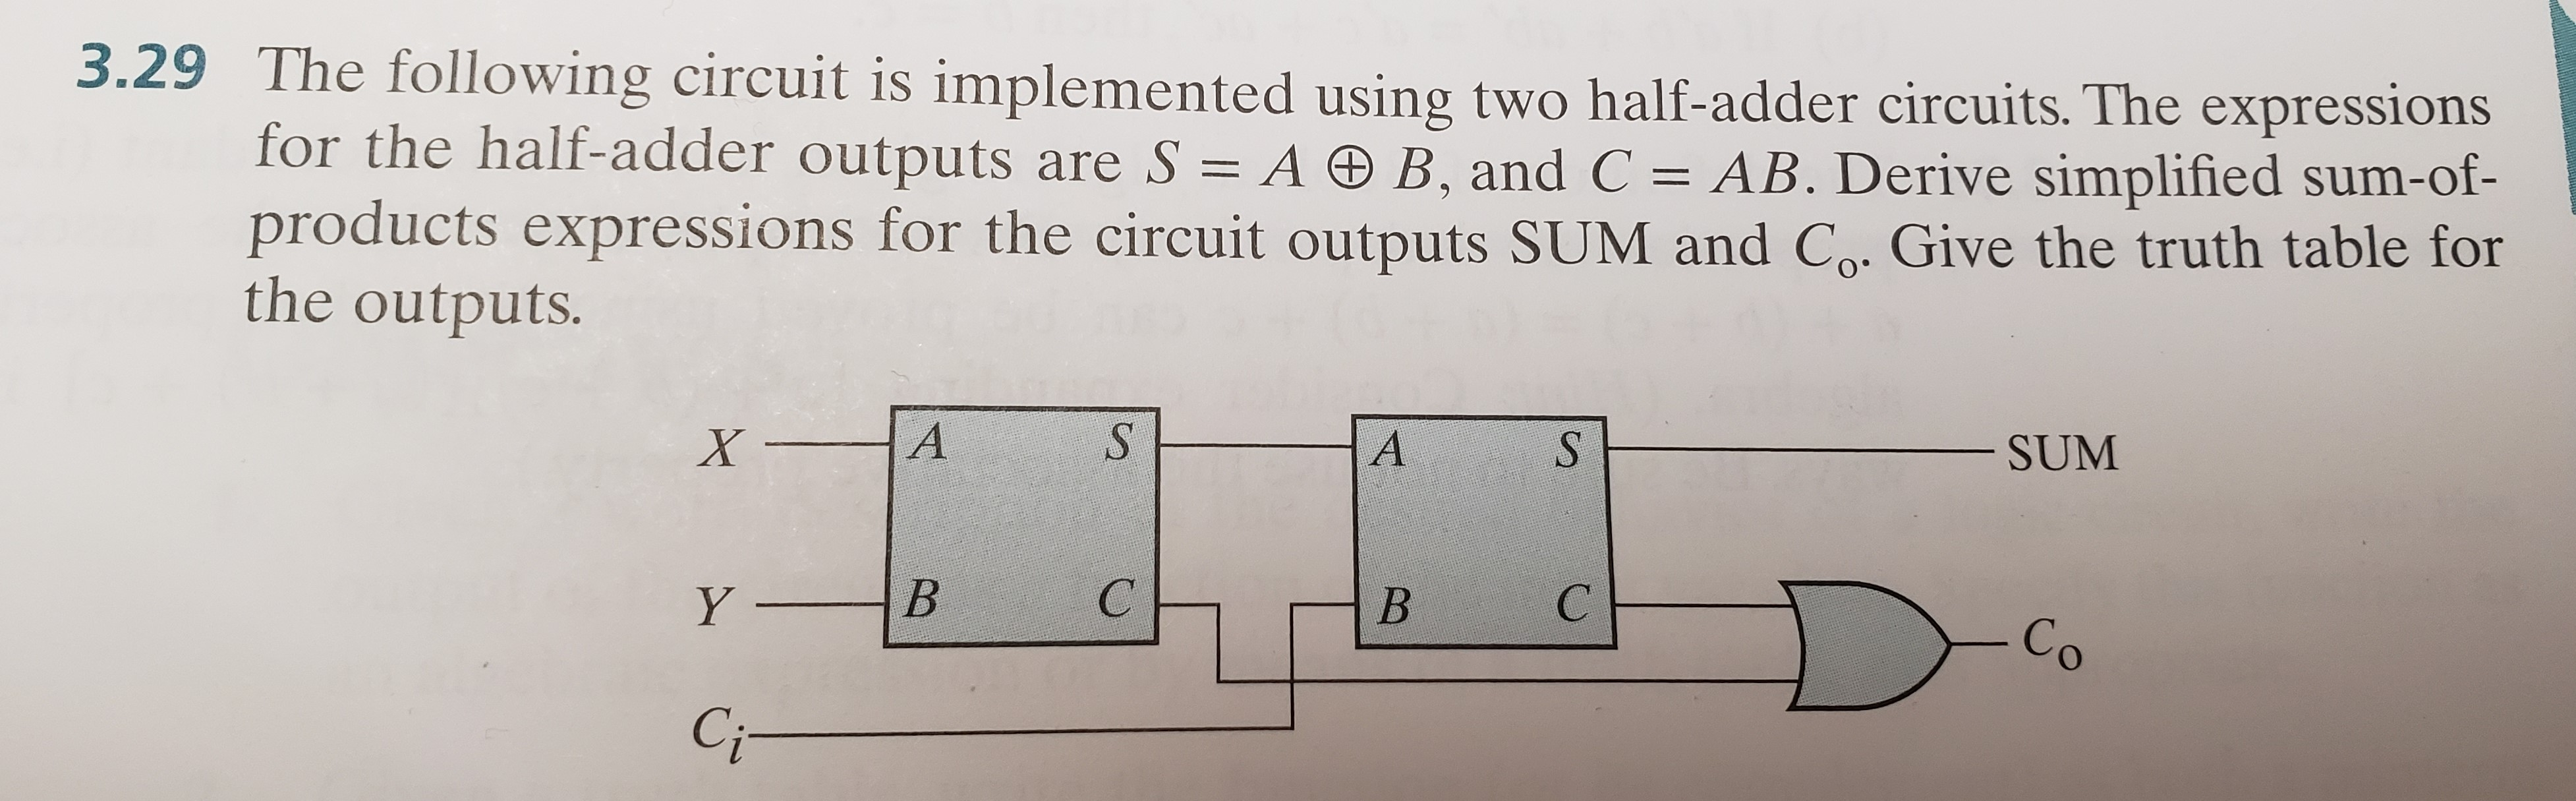 3.29 T he following circuit is implemented using two half-adder circuits. The expressions for the half-adder outputs are S A田B, and C = AB. Derive simplified sum-of- products expressions for the circuit outputs SUM and Co. Give the truth table for the outputs. SUM B C B C Co